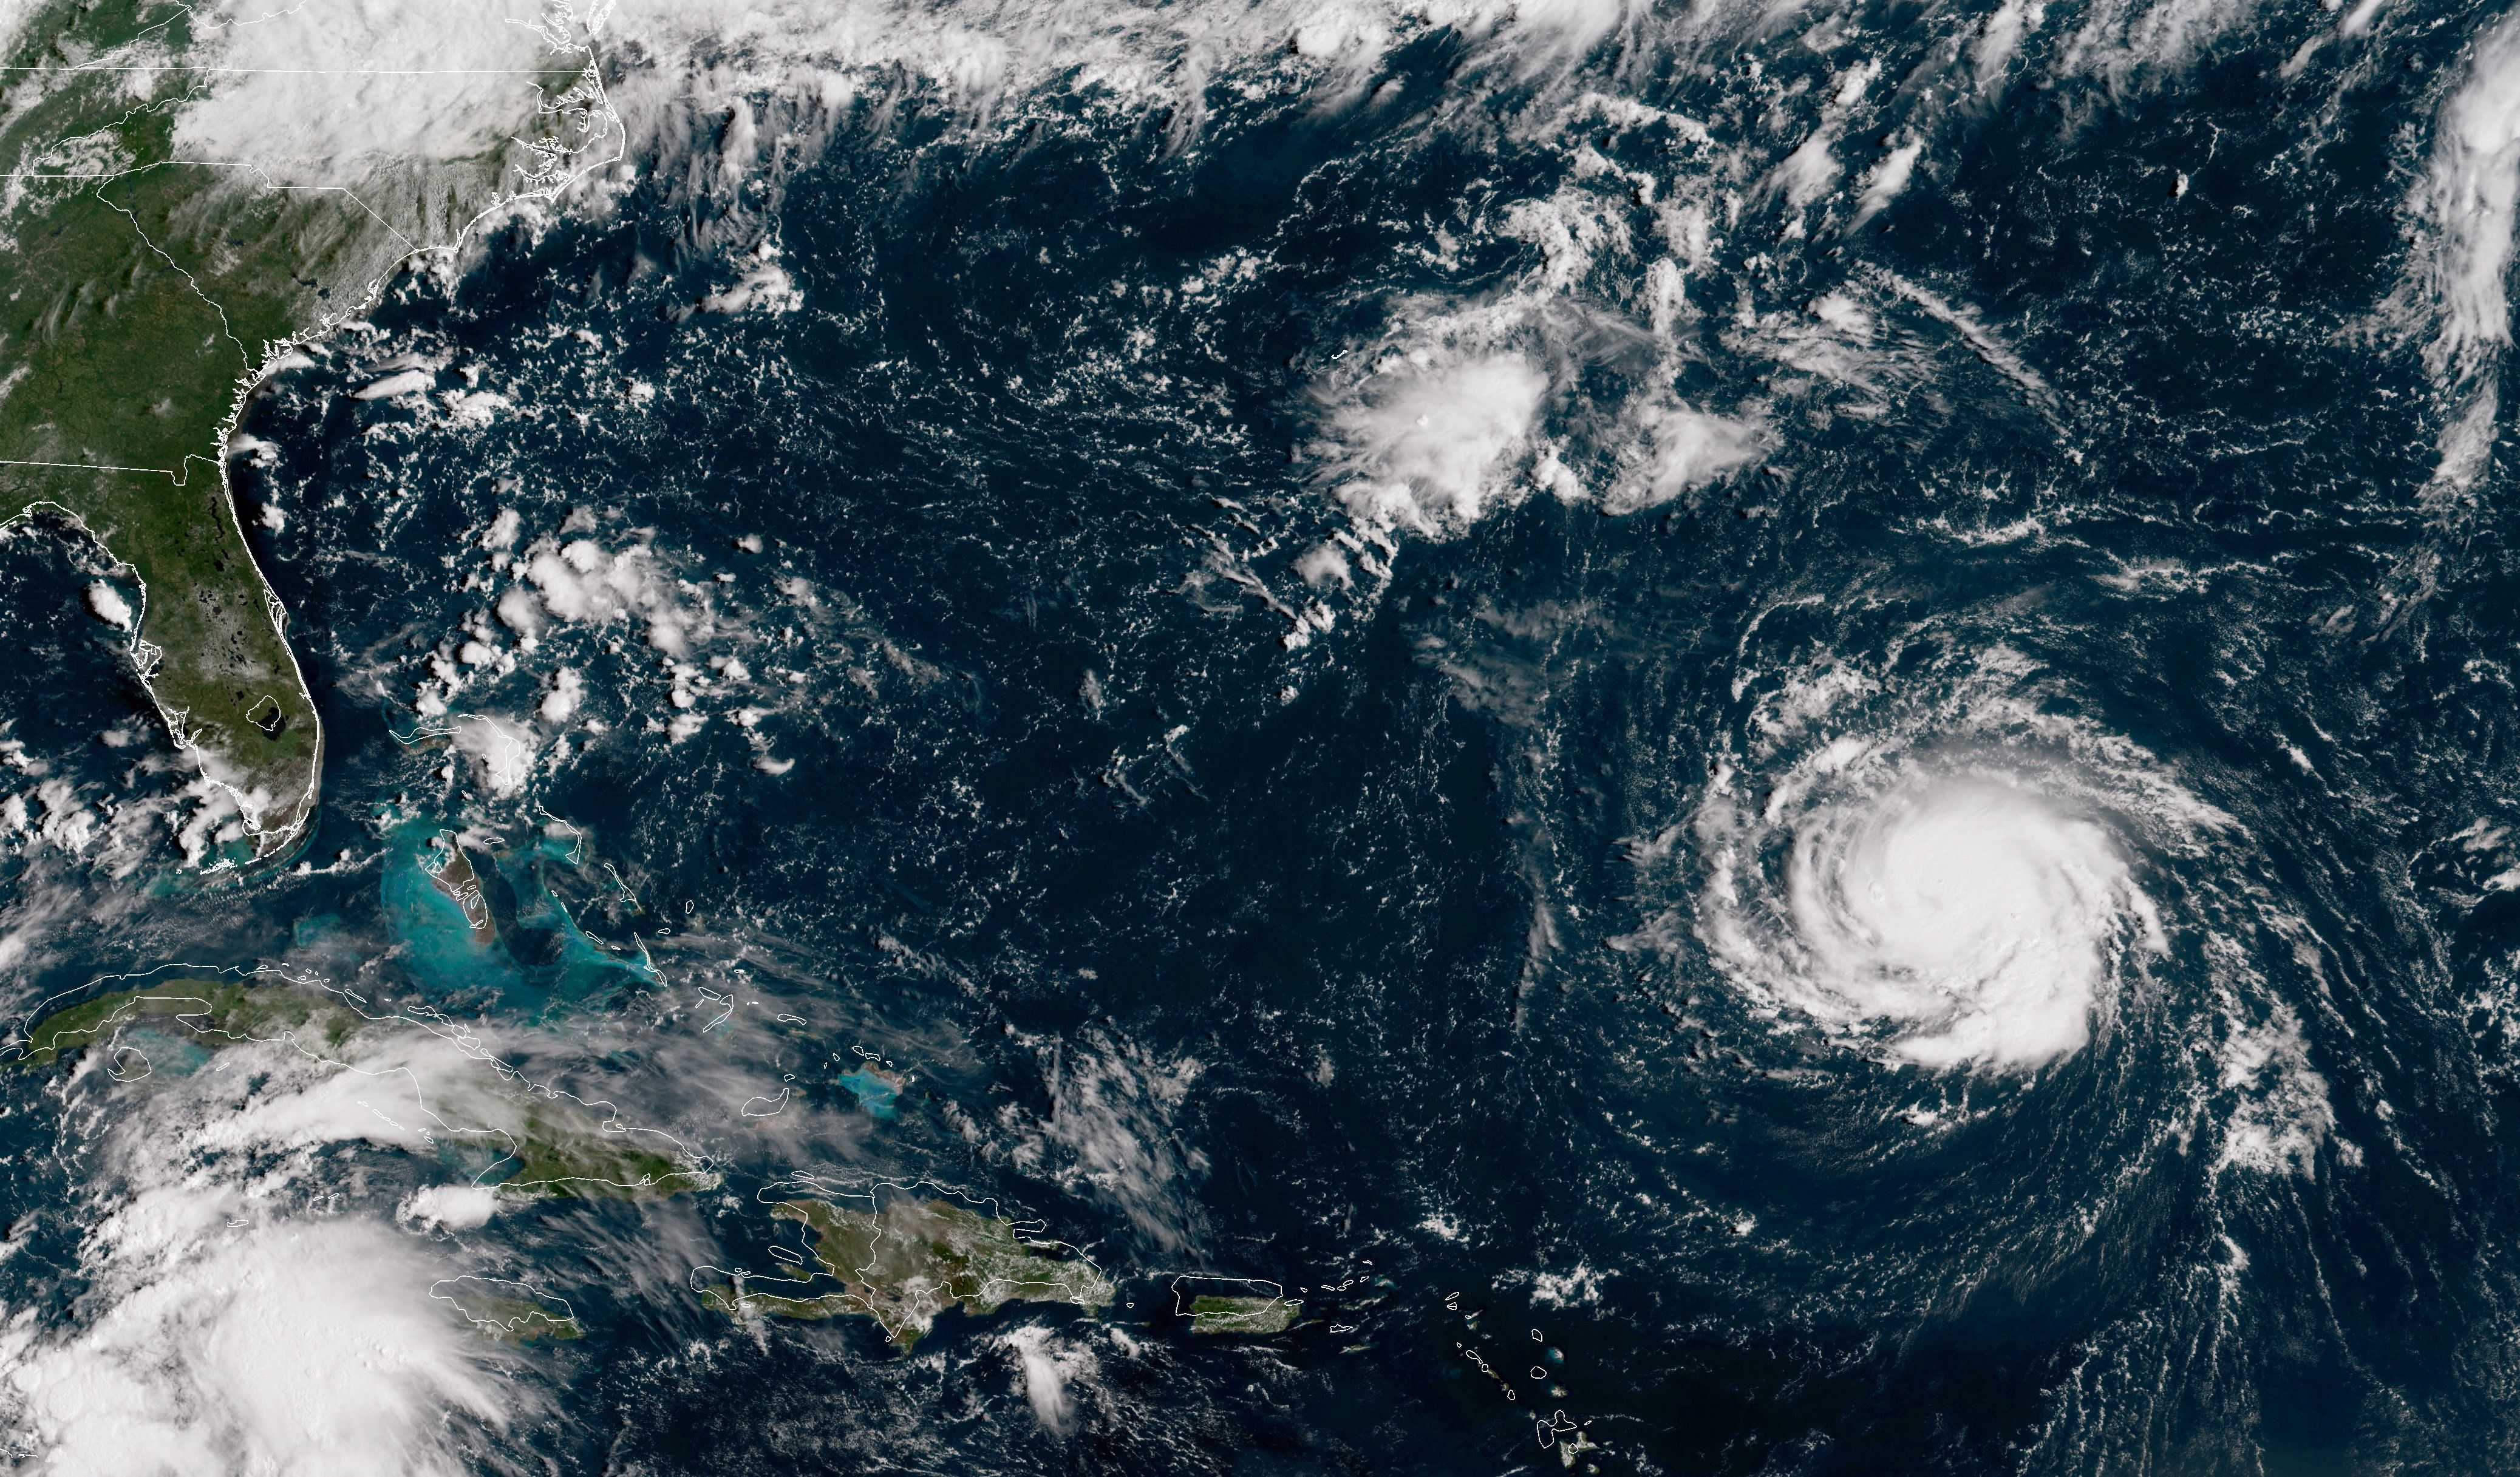 ATLANTIC OCEAN - SEPTEMBER 10:  In this NOAA satellite handout image, shows Hurricane Florence as it travels west and gains strength in the Atlantic Ocean southeast of Bermuda on September 10, 2018. Weather predictions say the storm will likely hit the U.S. East Coast as early as Thursday, September 13 bringing massive winds and rain.  (Photo by NOAA via Getty Images)